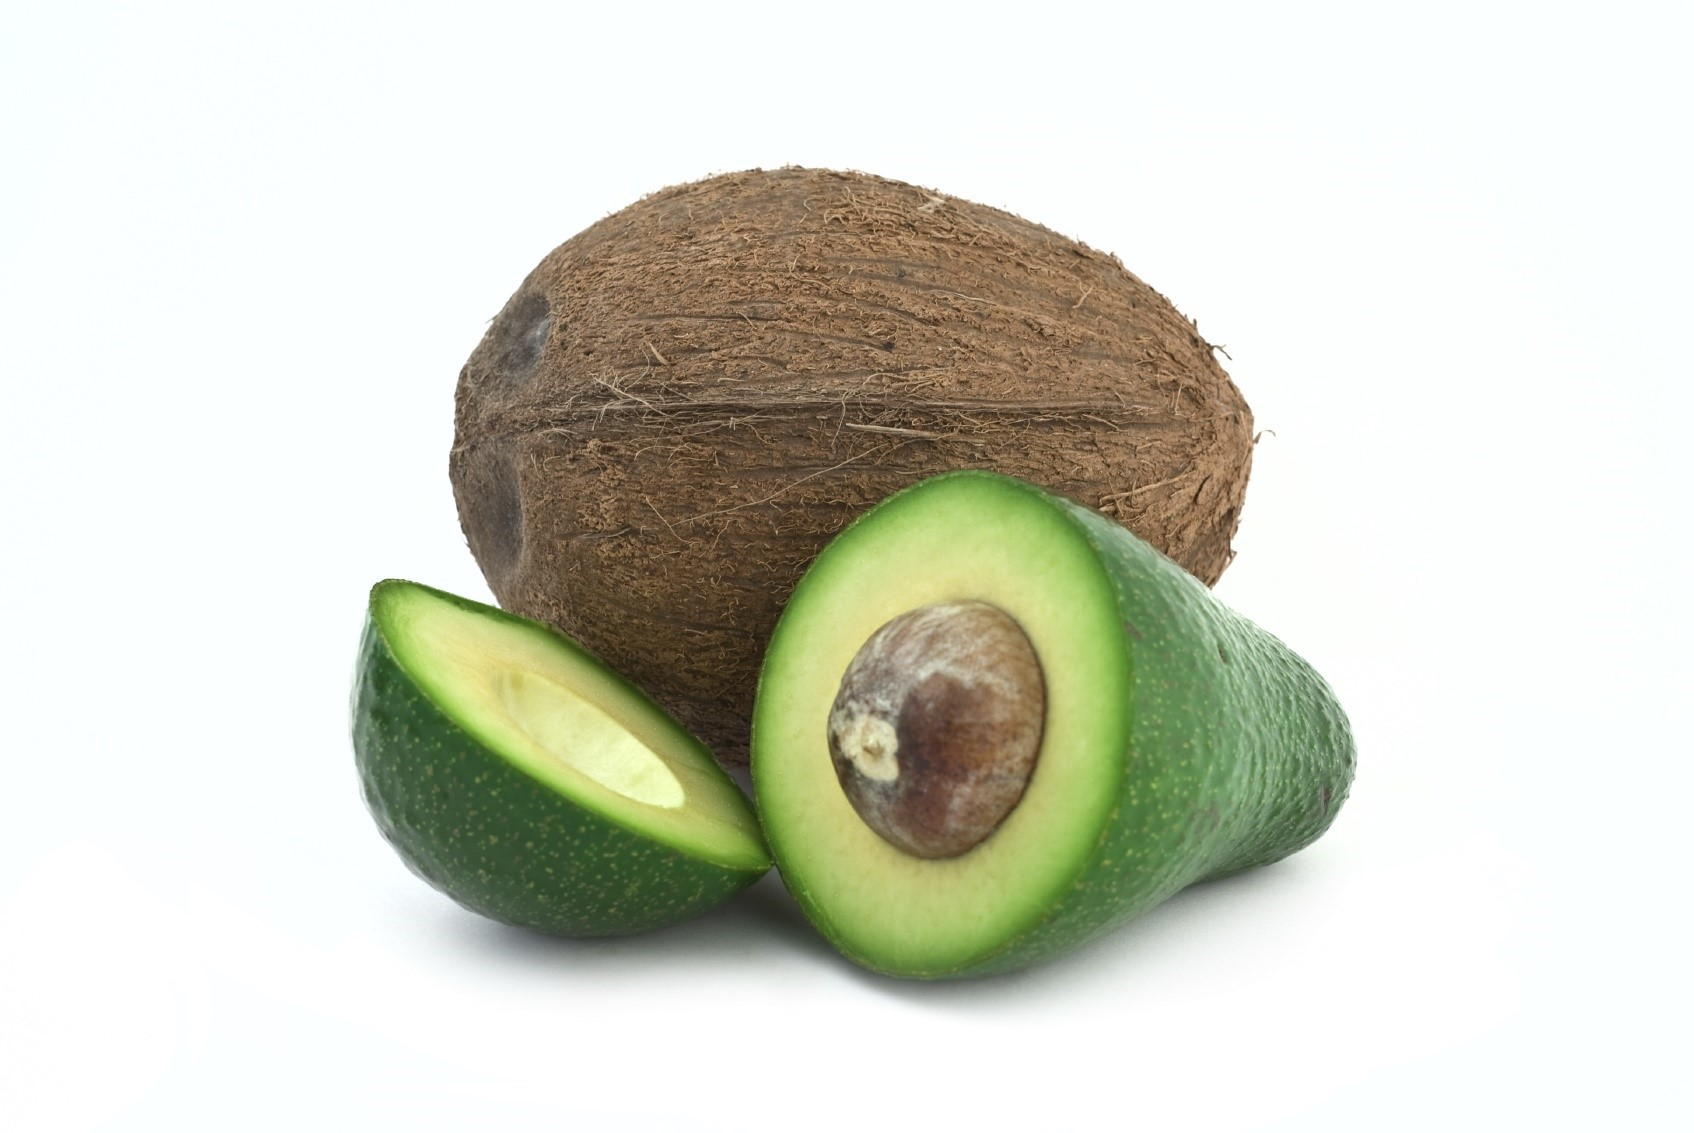 acceptability of avocado and young coconut This finding could explain the higher sensory acceptability of the fruit pre-osmo when compared with those pre-air dehydrated the effect of osmotic process conditions on the volatile fraction of strawberries was analyzed by , as well as the effect of freezing and frozen storage.